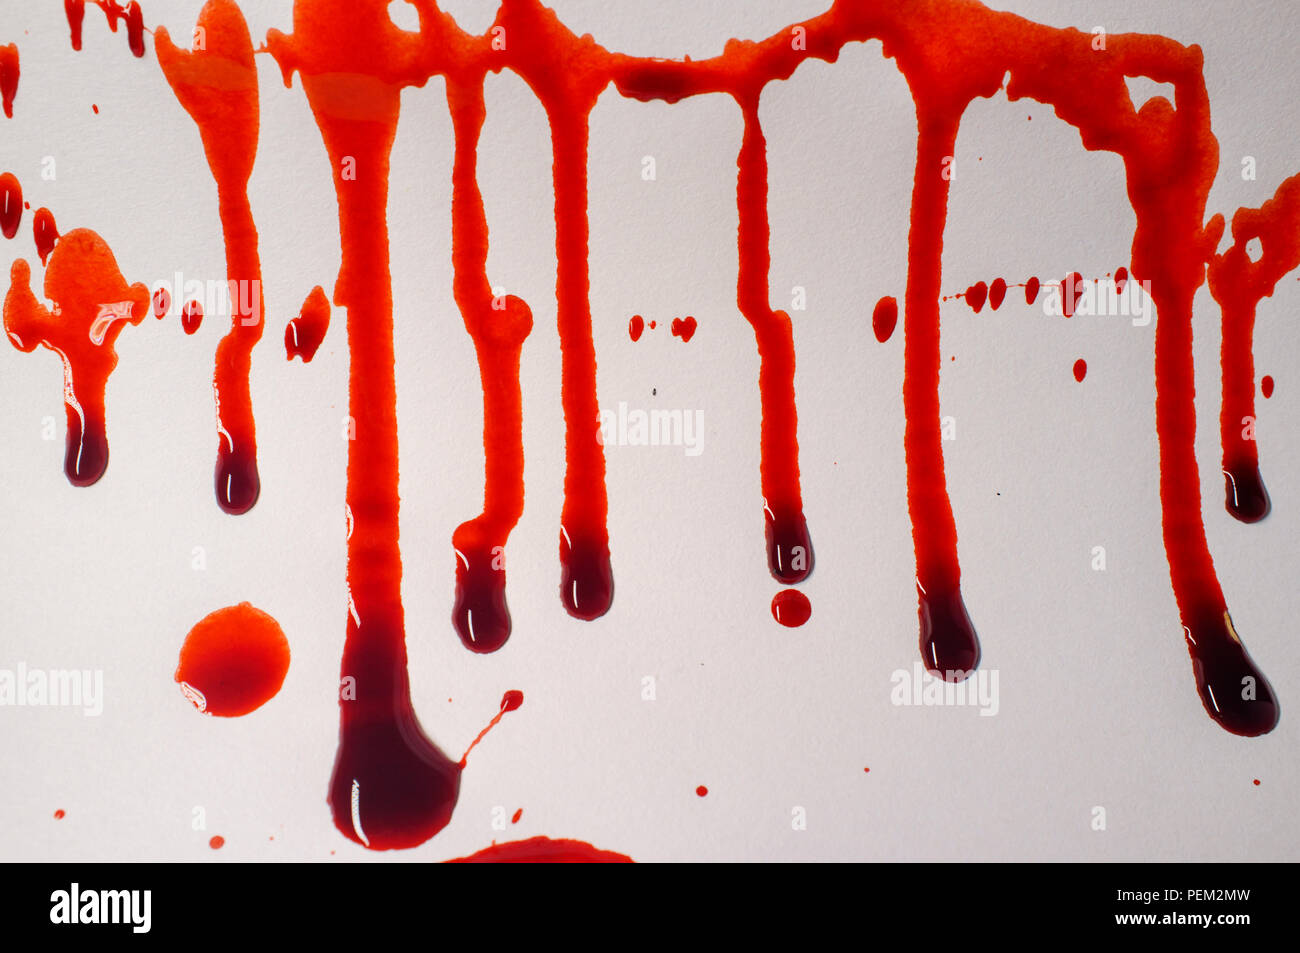 Blood Spatter Patterns Magnificent Inspiration Ideas